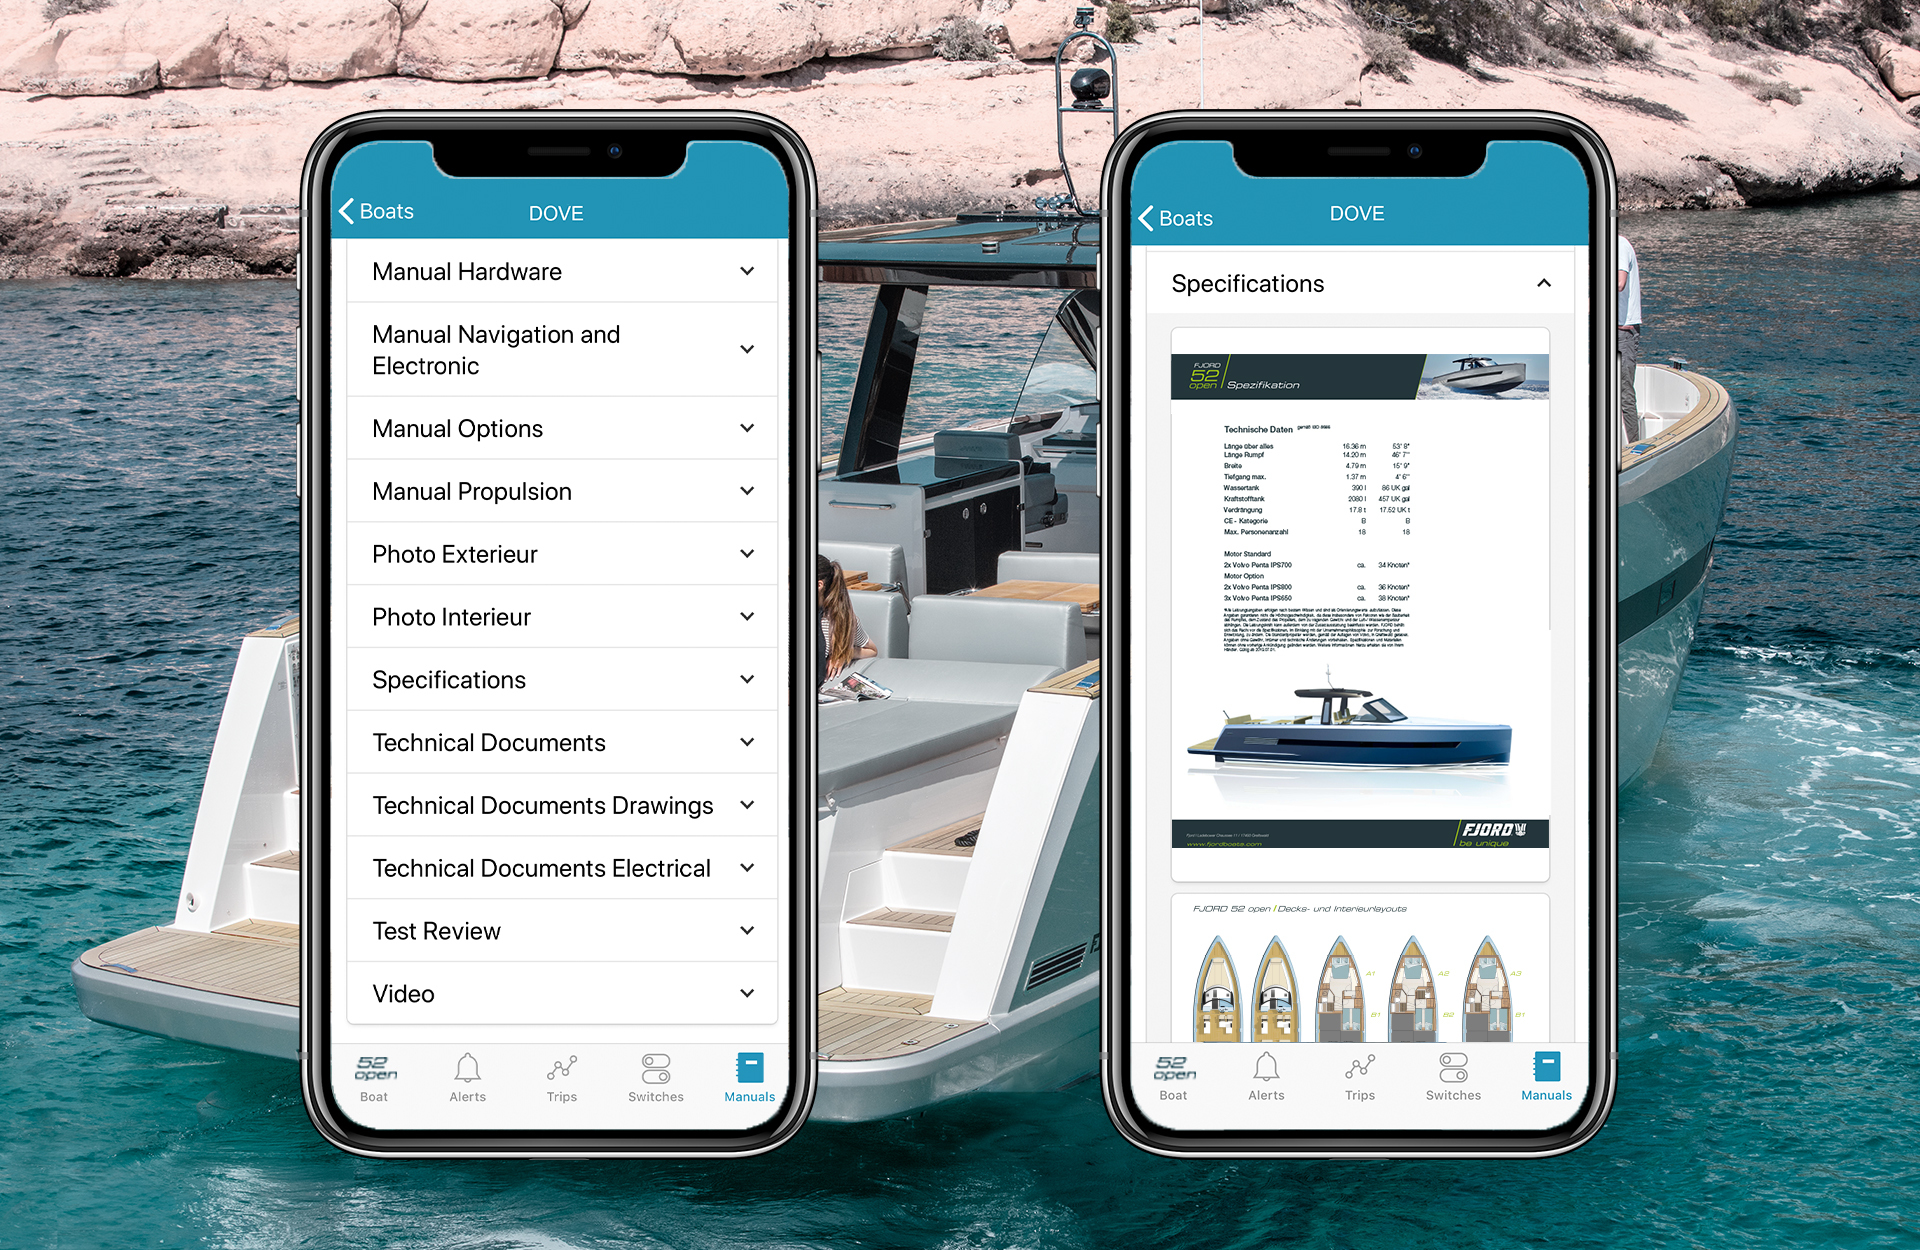 Access your boats manuals and technical documents with your smartphone